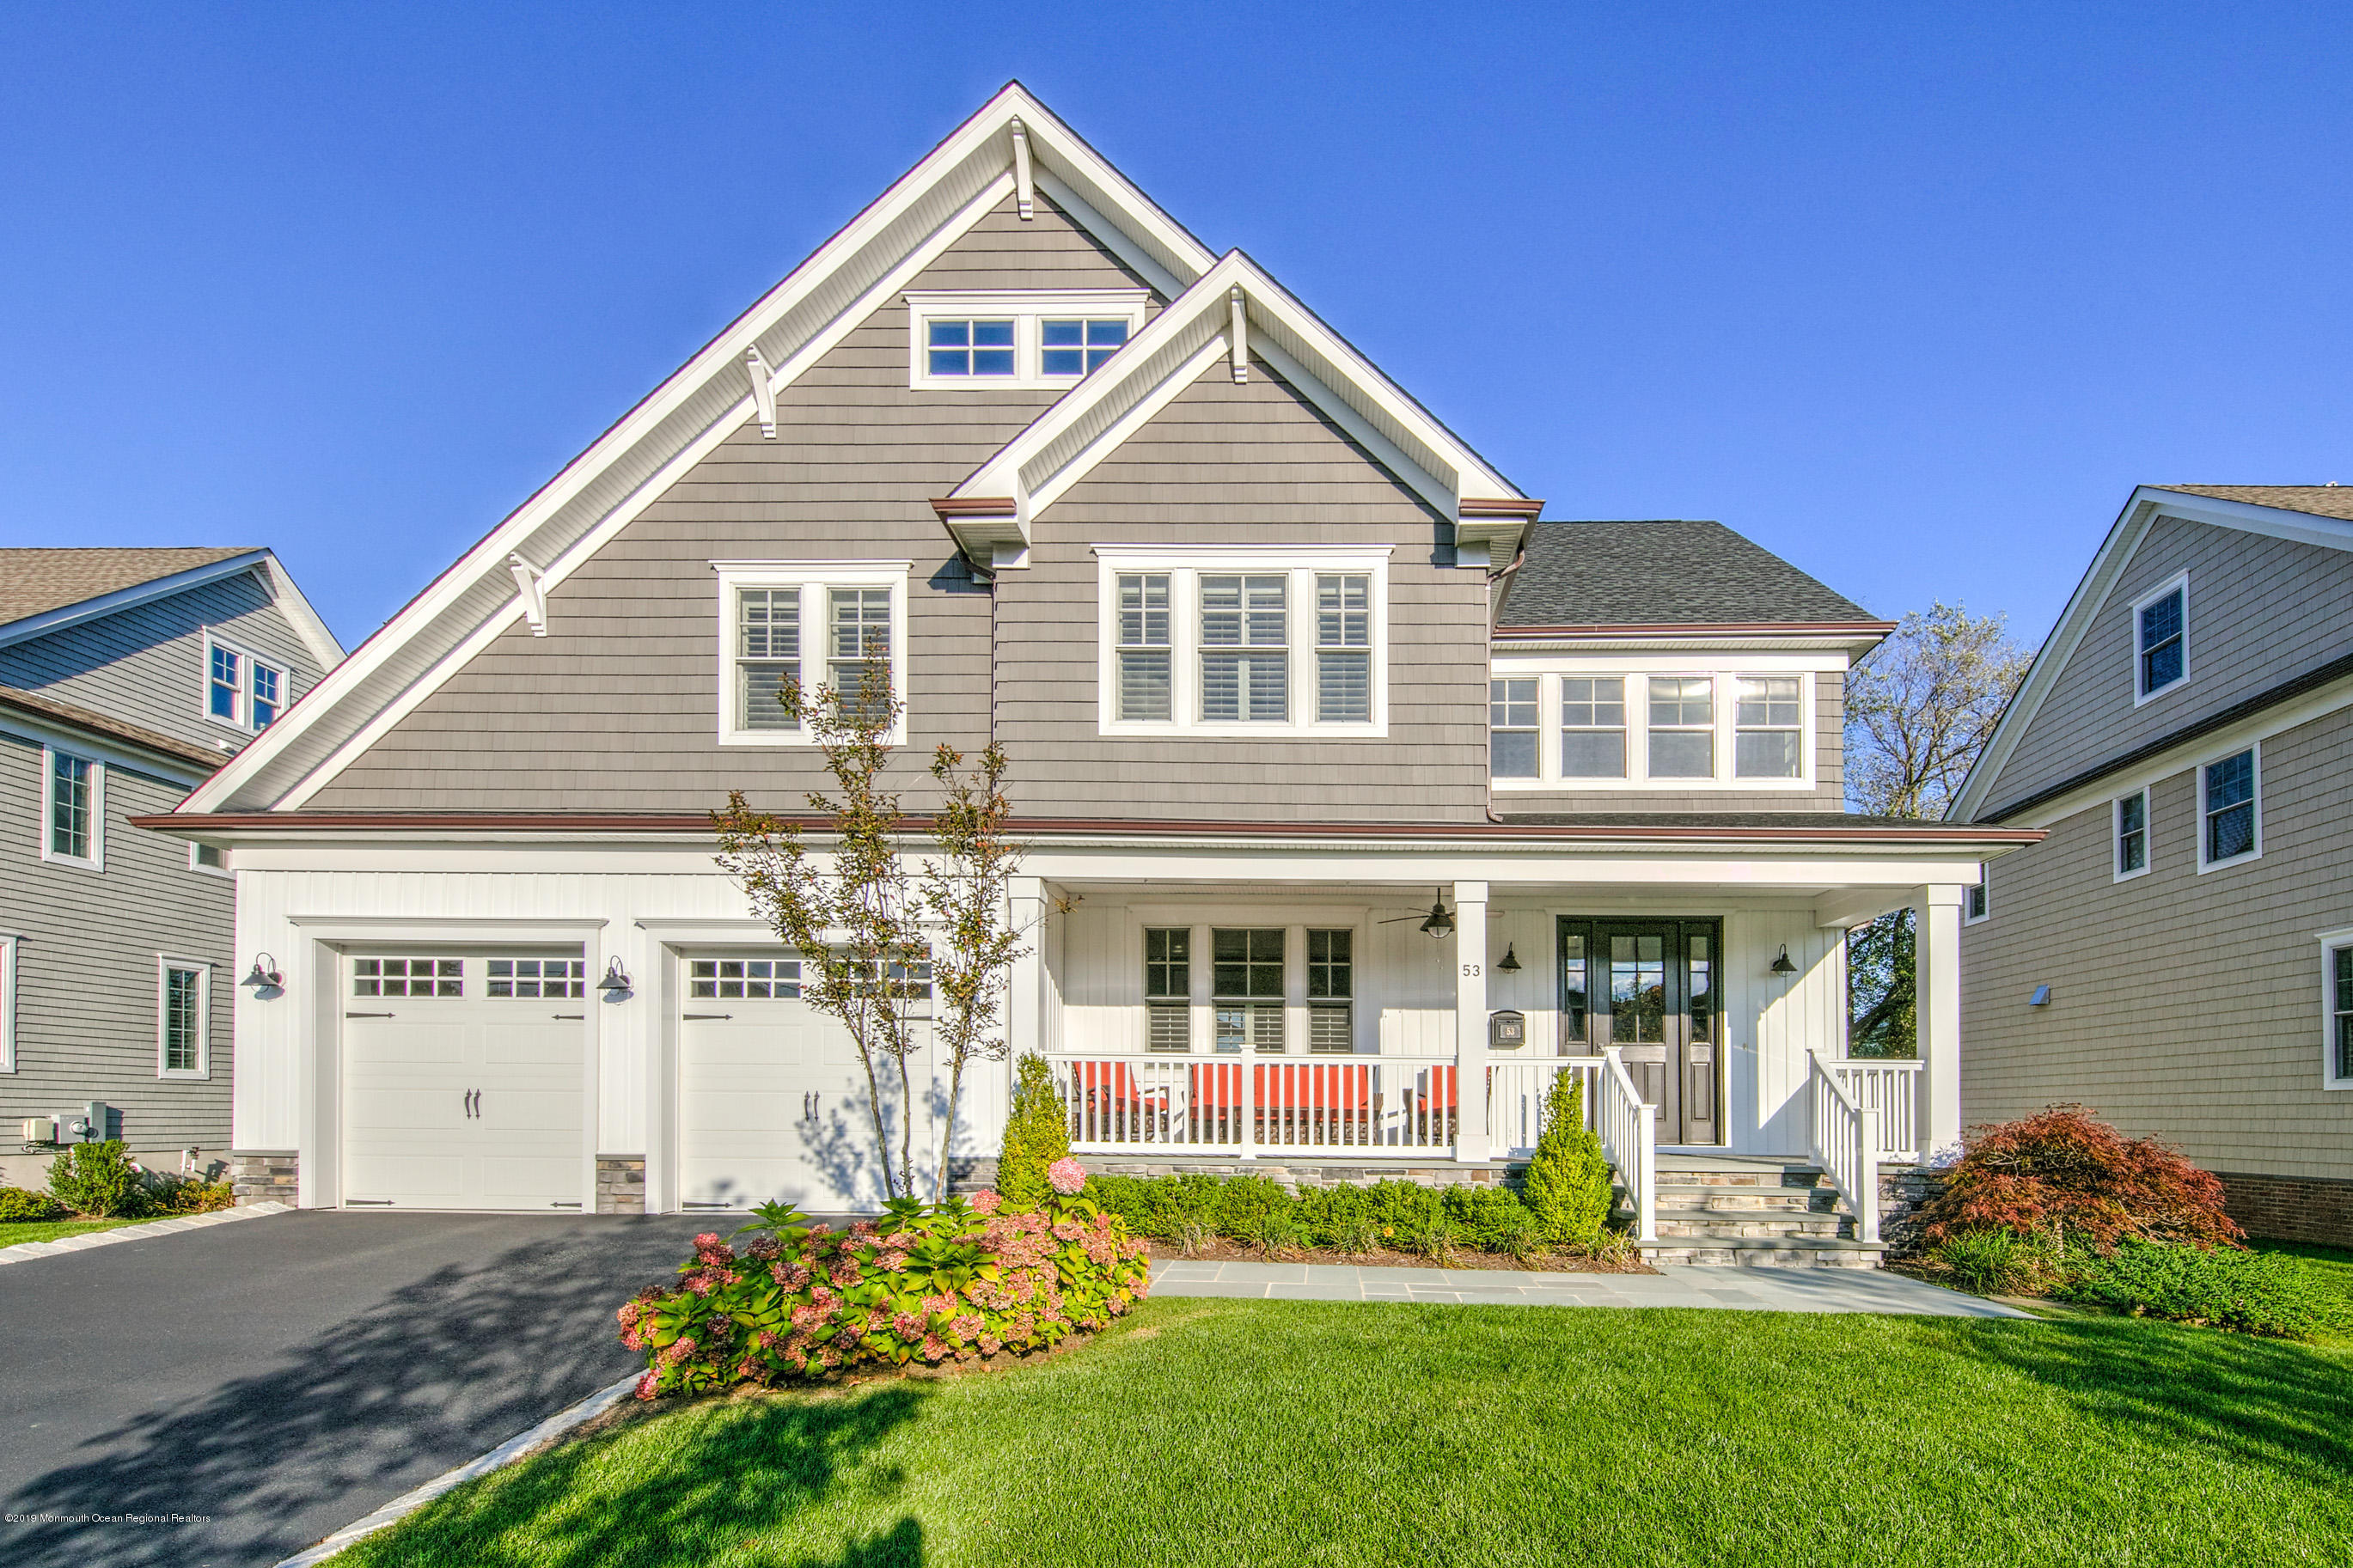 Photo of 53 Navesink Drive, Monmouth Beach, NJ 07750